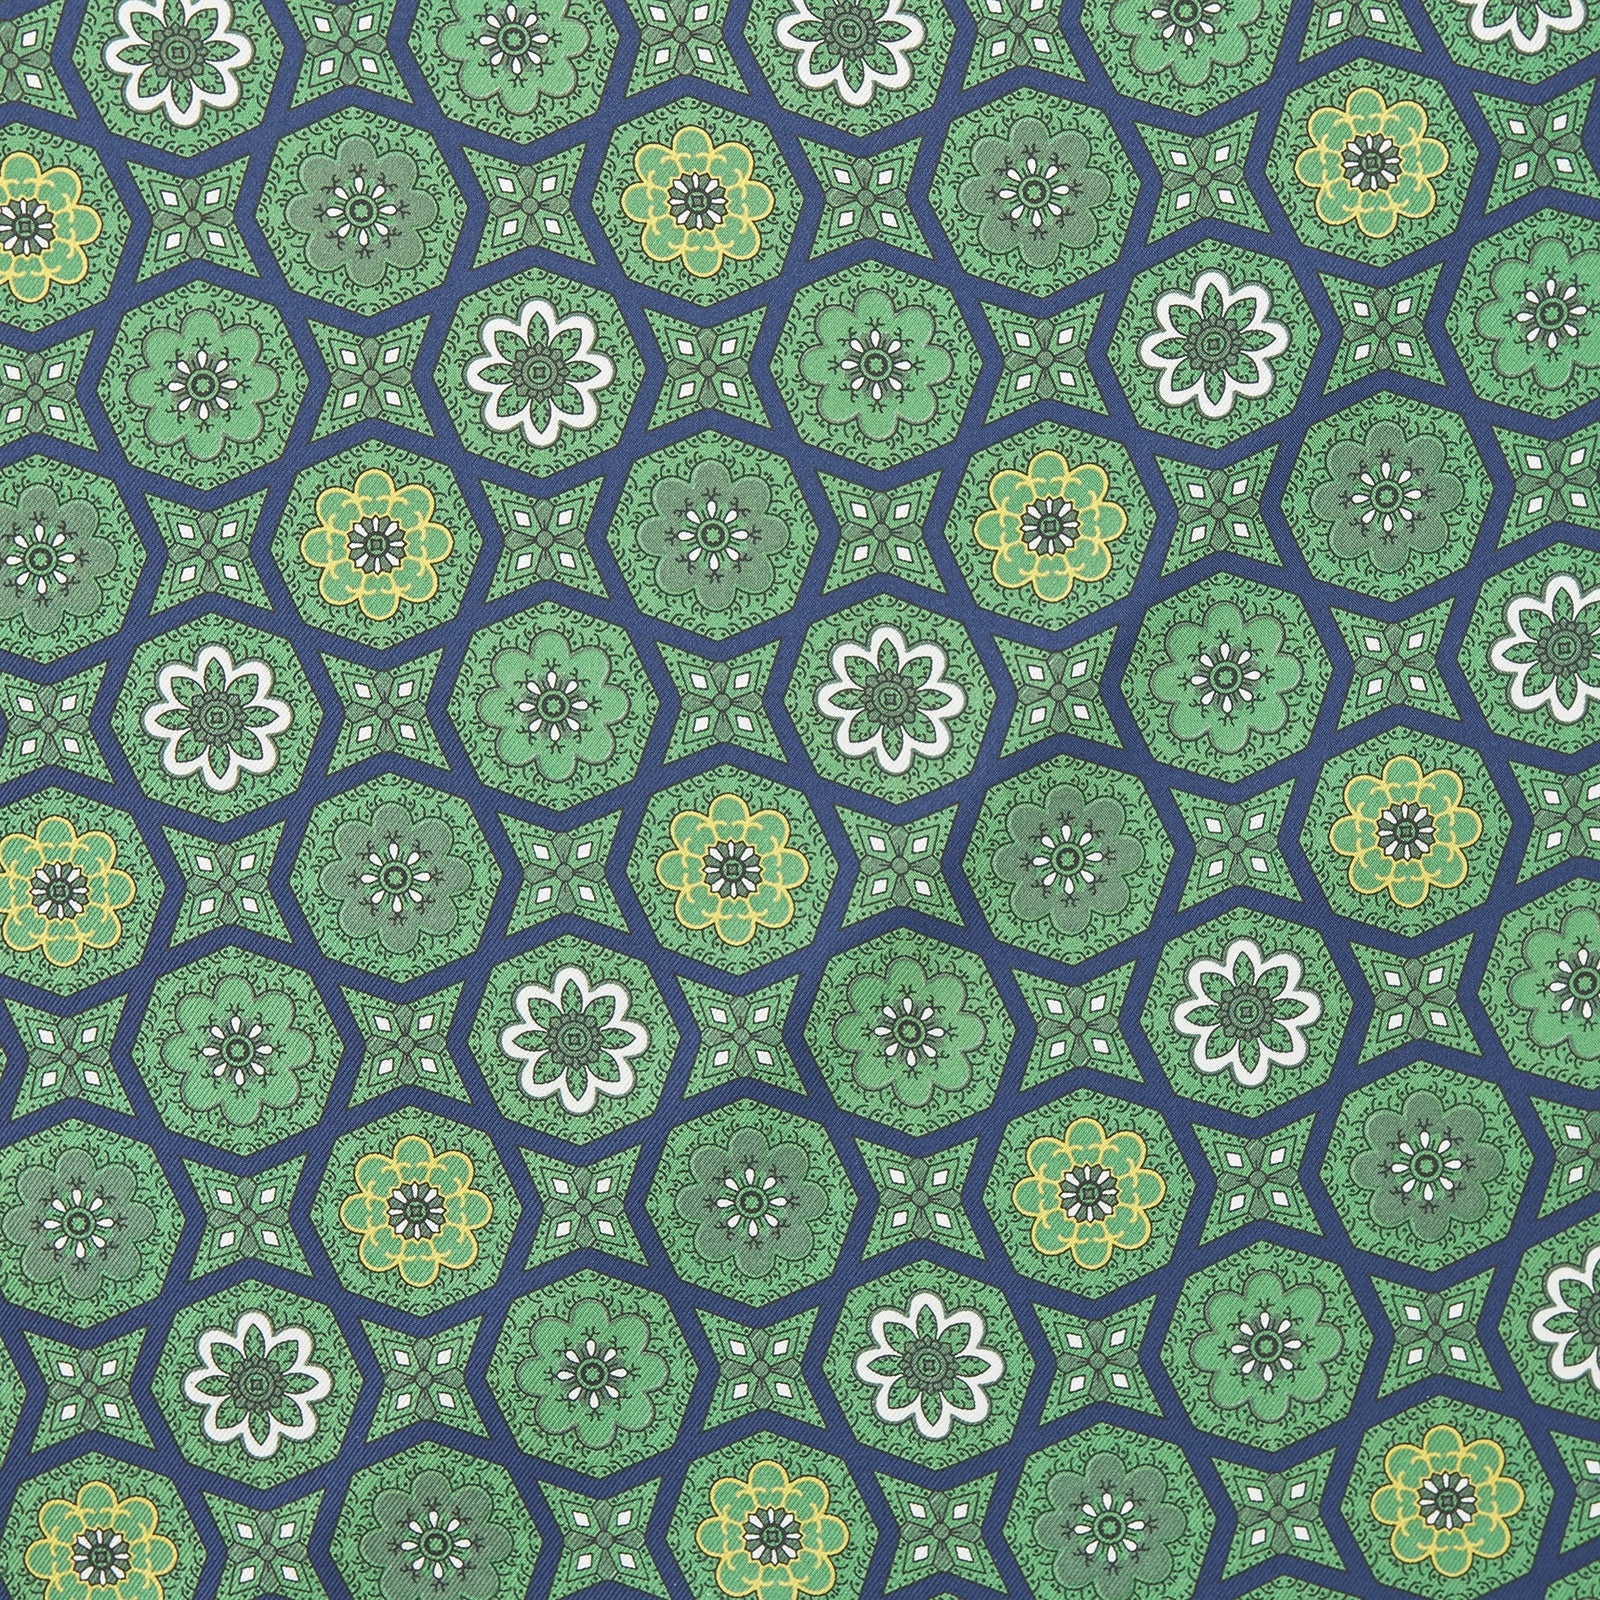 Green and Navy Floral Medallion Silk Pocket Square